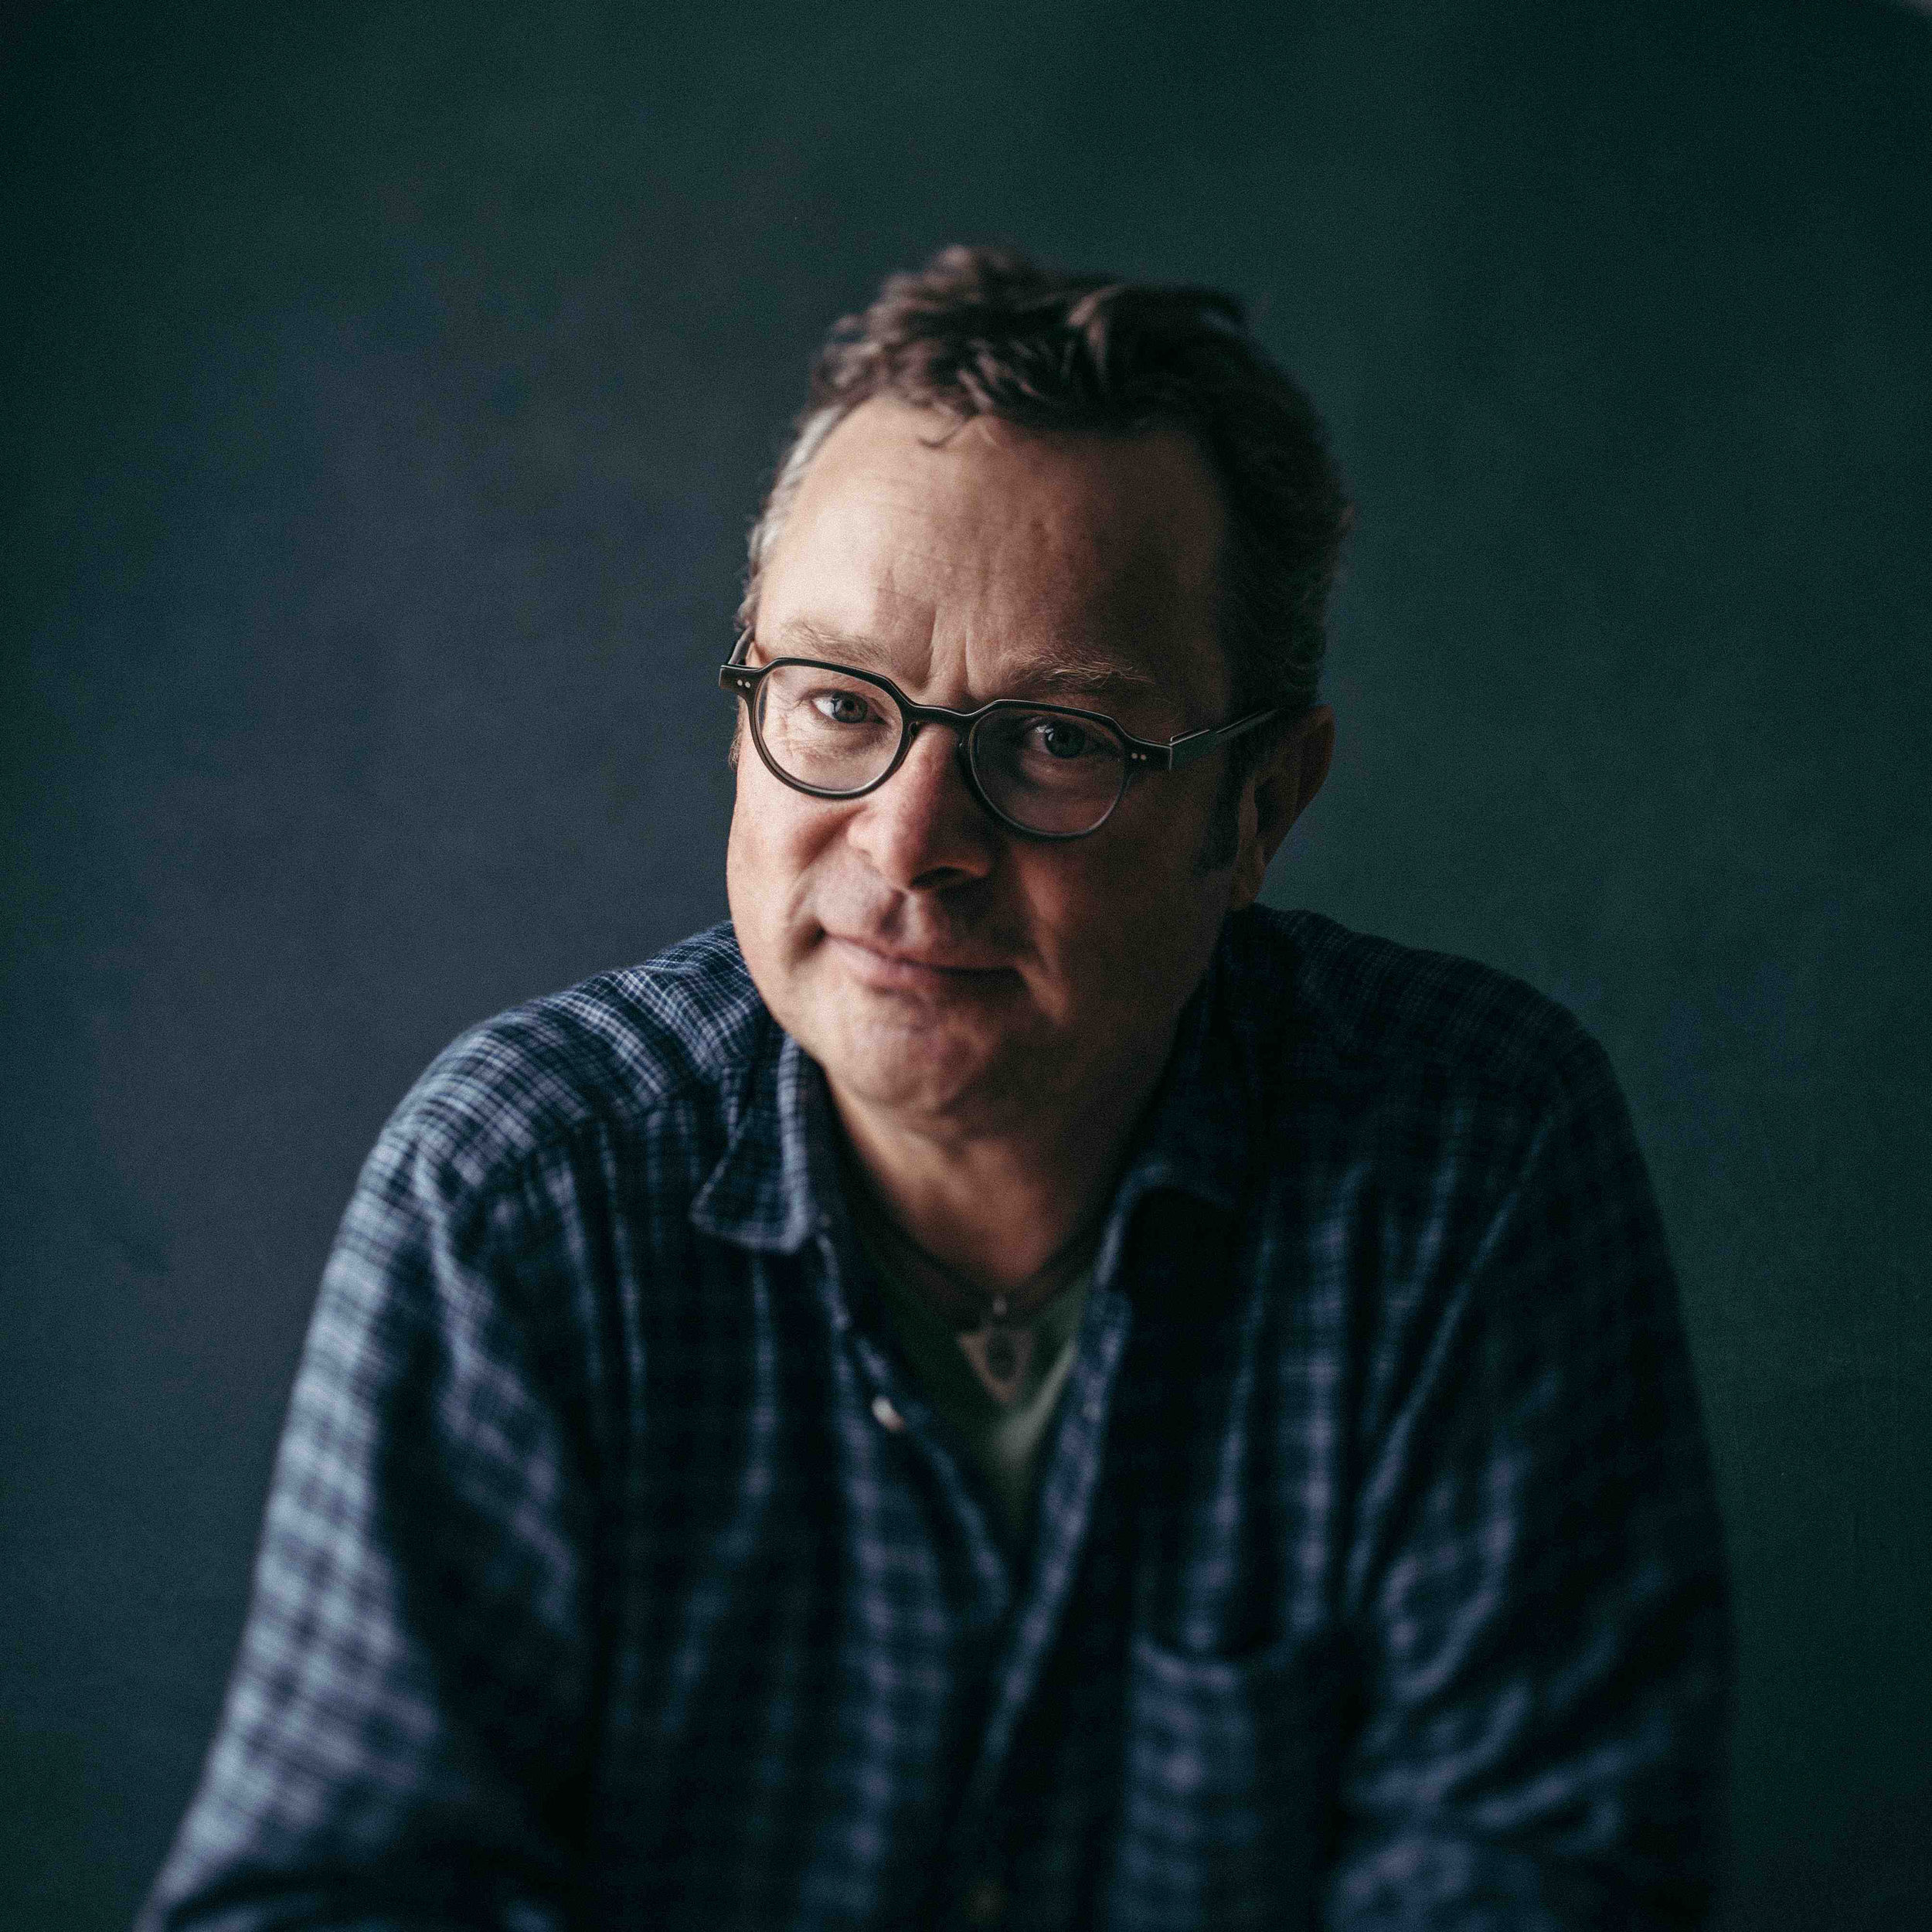 HUGH FEARNLEY-WHITTINGSTALL  Founder of River Cottage   Everything we eat flows from the soil. Healthy soil provides nourishment and nutrients, goodness and taste. But when we lose sight of its precious living quality, we are in danger of losing a vital thread in the web of life. When it is over-exploited, the very system we depend on is destroyed. We are impoverished and left vulnerable.    Soils are facing a crisis as we have allowed them to degrade and wash away the world over. We need to act fast before we reach an irrecoverable tipping point in the soil's capacity to regenerate and continue to provide not only good food, but food at all. We must hand over to the next generation soils that are secured, nurtured and cared for. This is why I fully support the aims and philosophy of the Sustainable Soils Alliance. I believe it can help people and organisations reach beyond their traditional boundaries, so that the UK can grasp this unique opportunity and become the world leader in soil health recovery and sustainability standards.